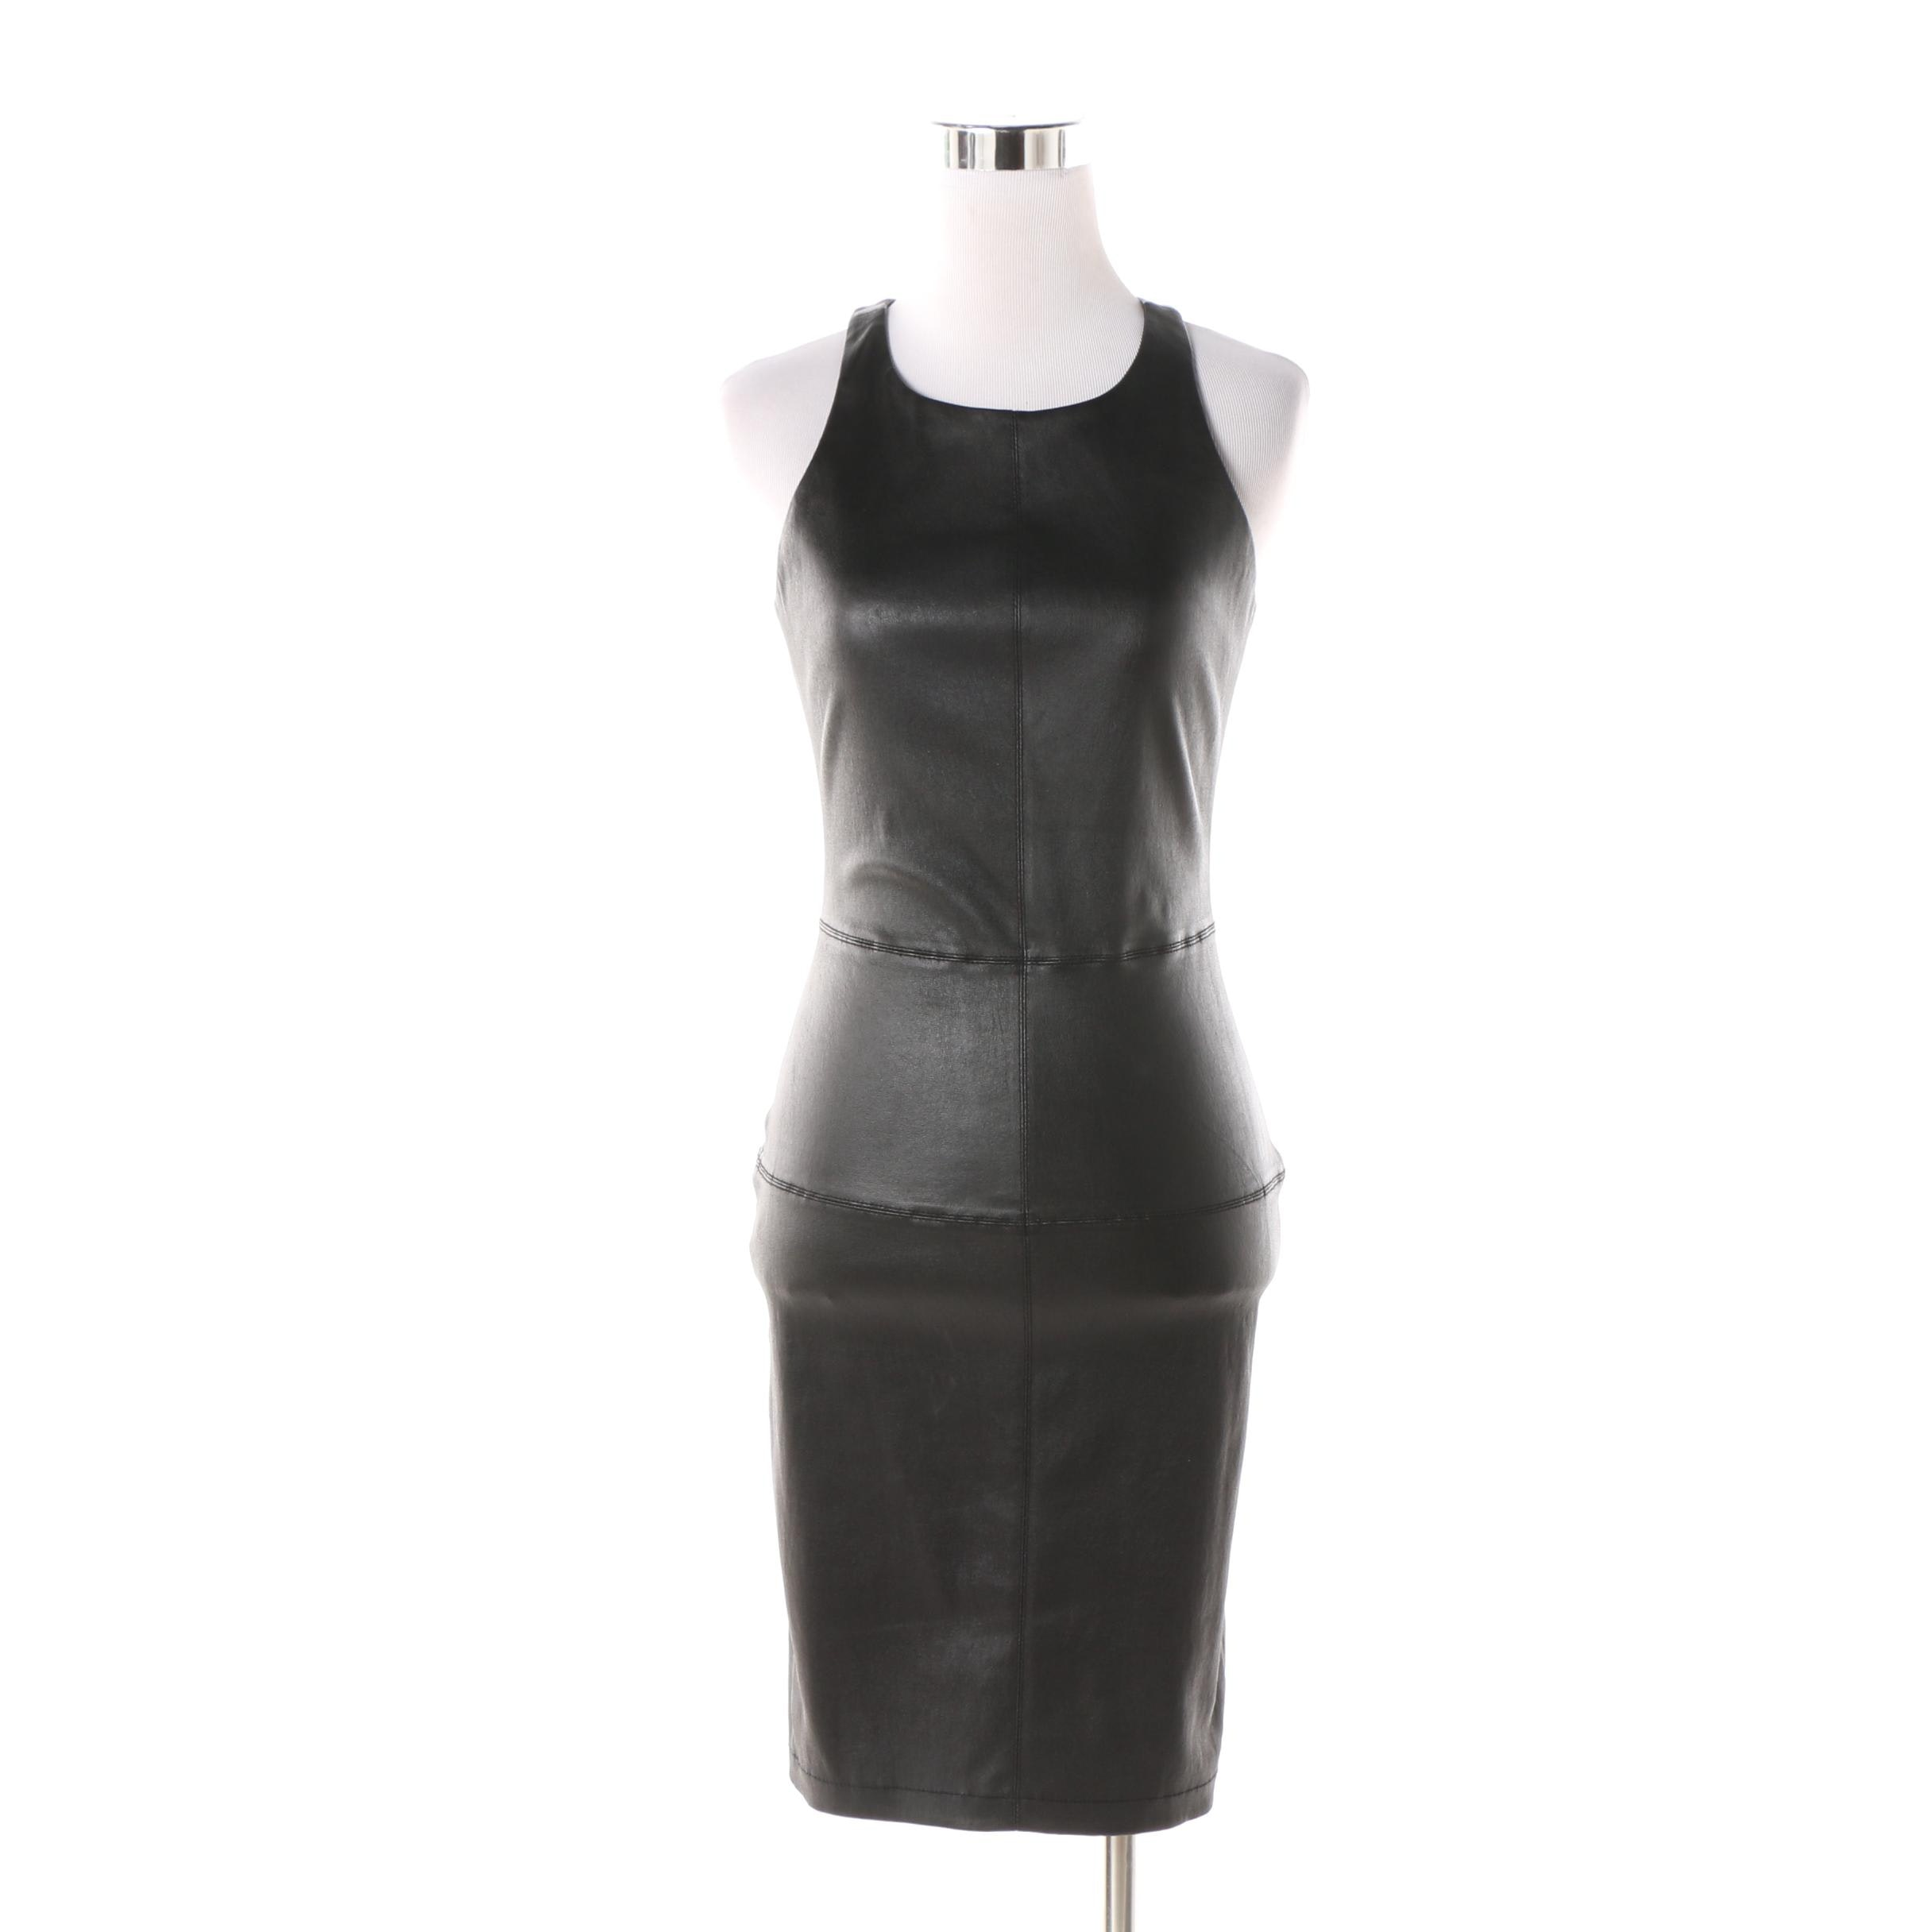 Elizabeth and James Black Lambskin Leather Lacerback Dress